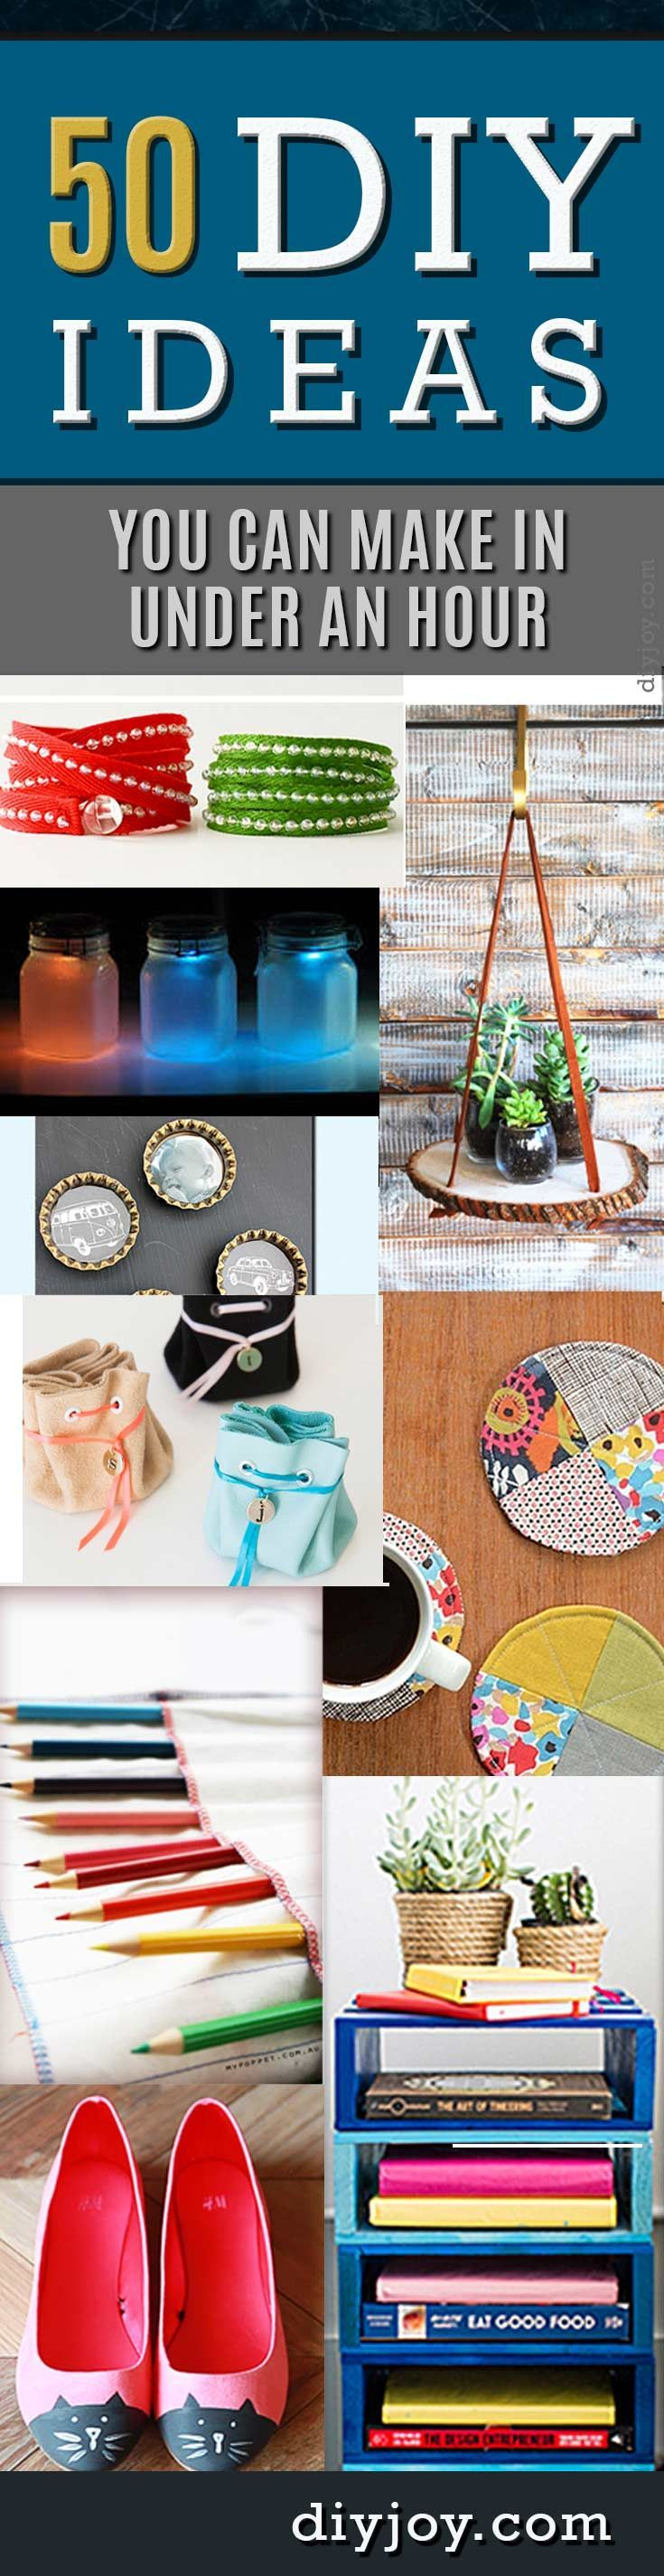 Quick DIY Projects and Easy, Fast Crafts Ideas You Can Make in Under an Hour